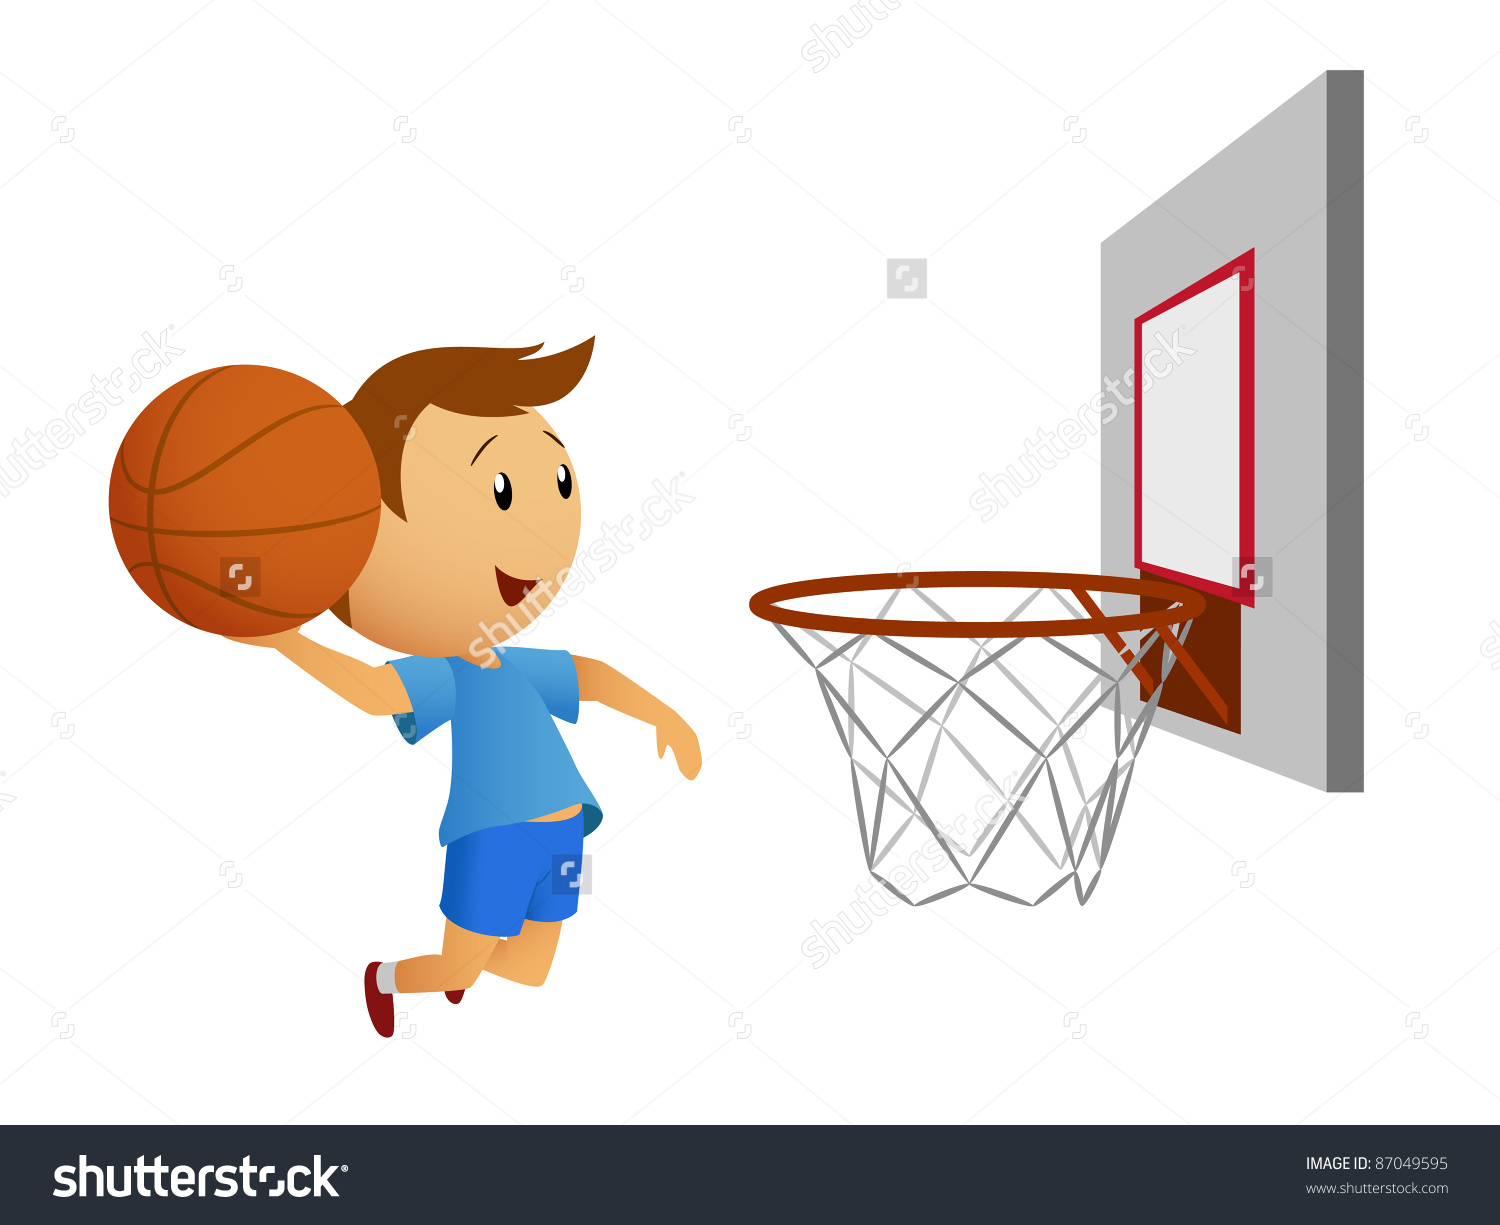 clipart front view of man shooting basketball - Clipground